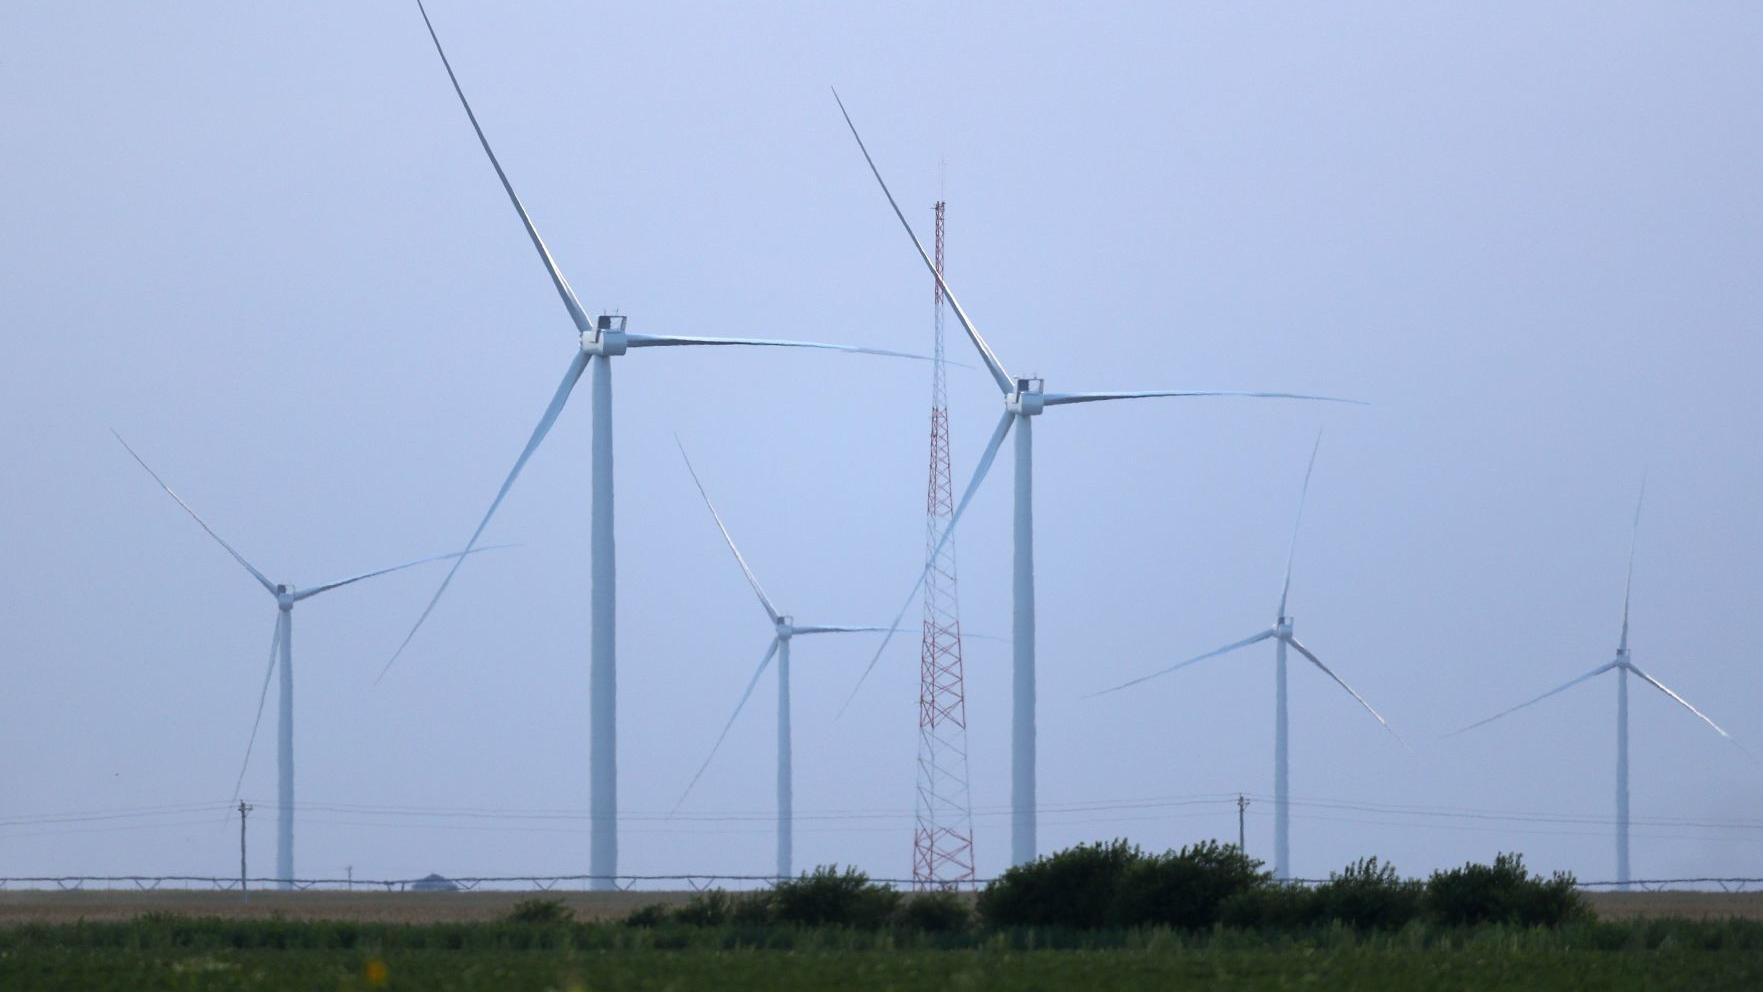 Midlands Voices: This clean-energy strategy can help Nebraska